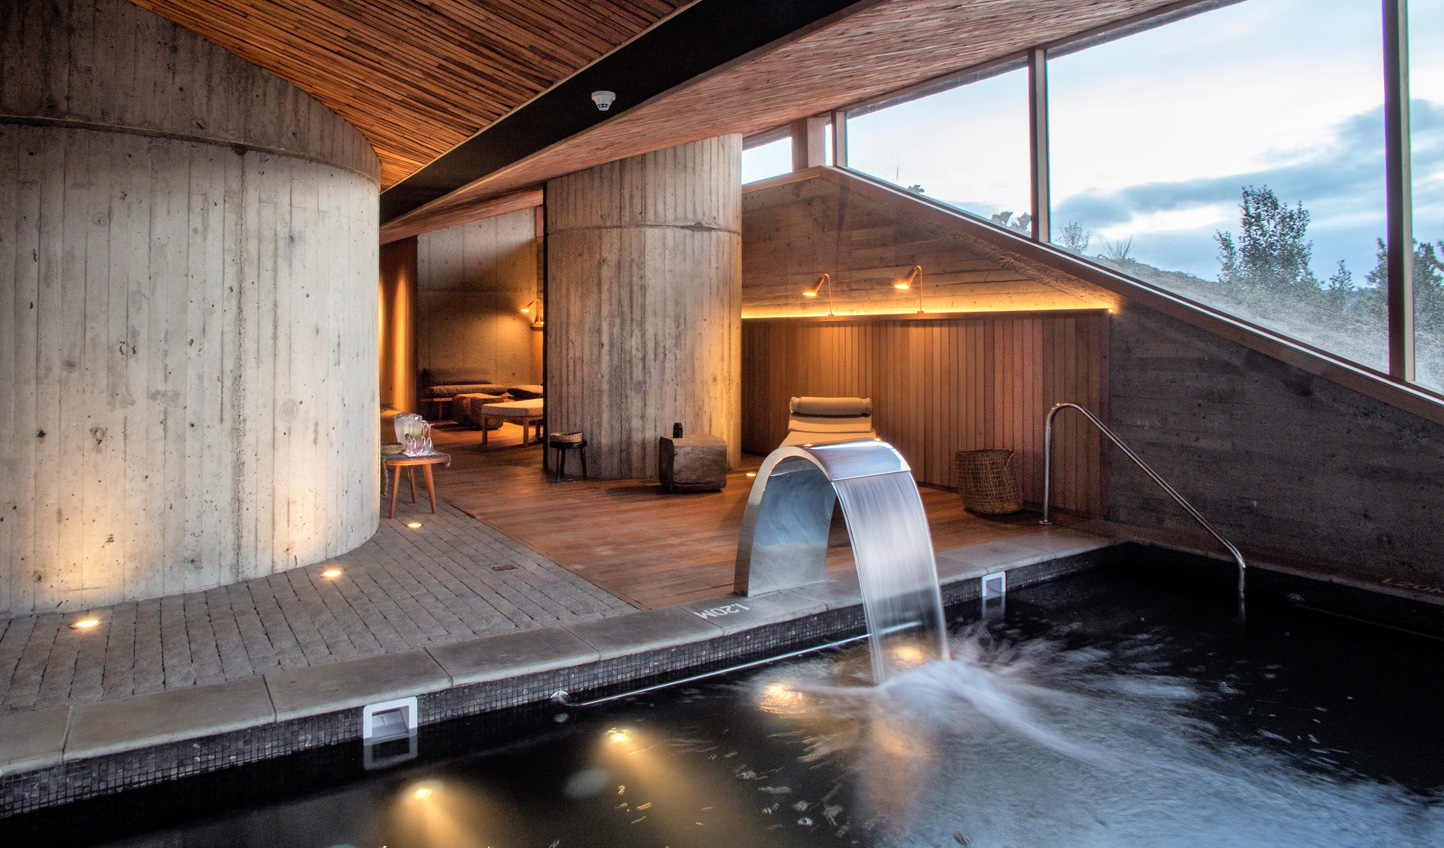 Unwind in the spa after a day of adventure